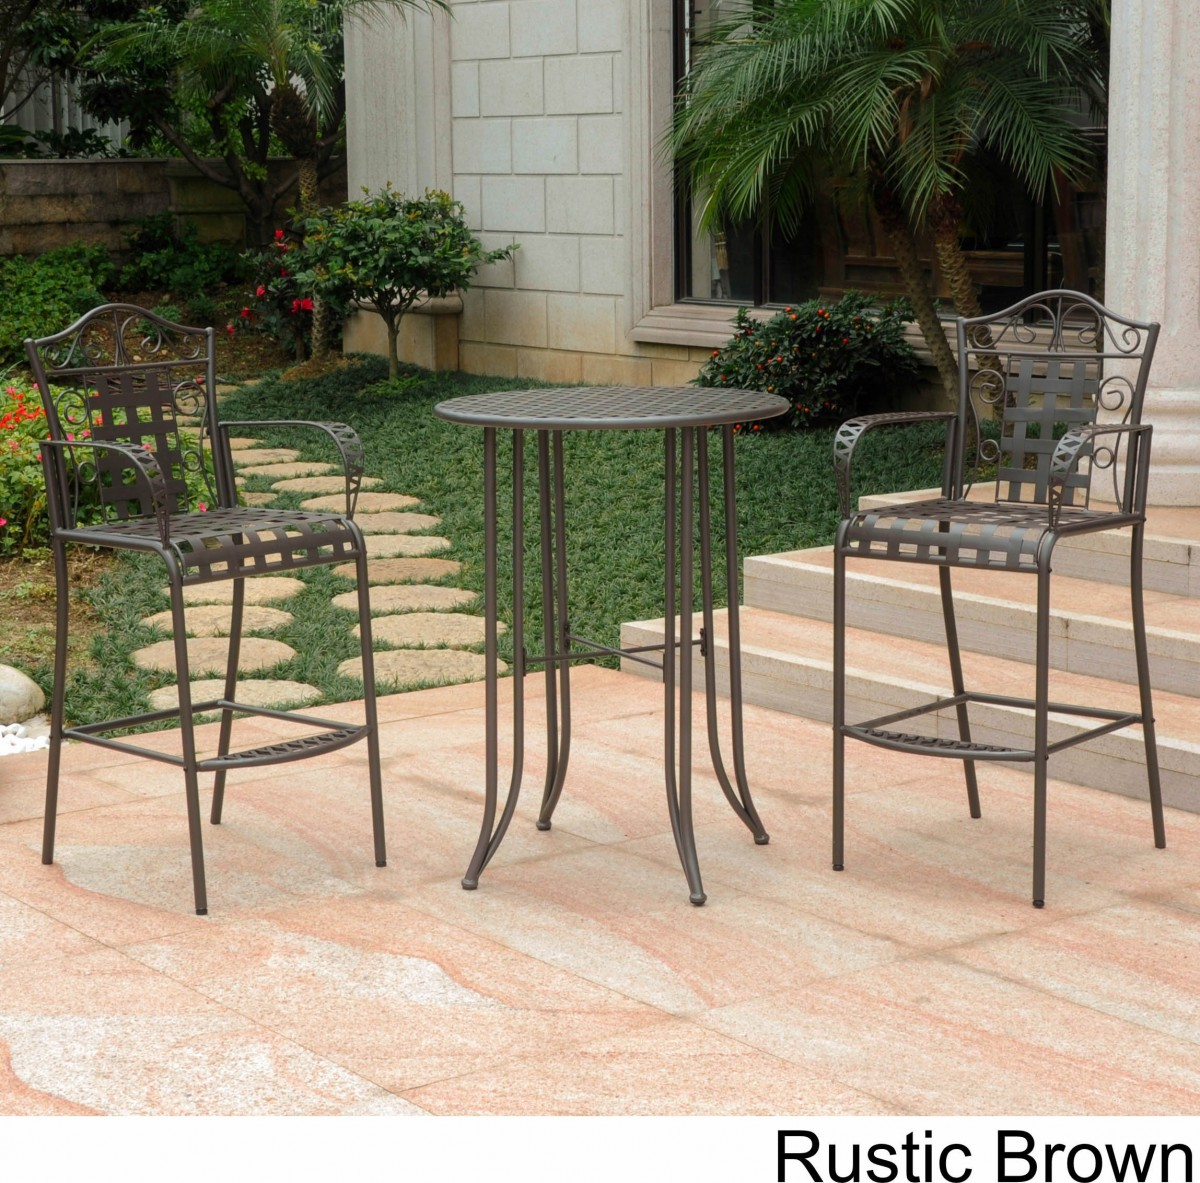 wrought iron bistro set with bar table and two barstools patio height accent small tall wine holder clear perspex dining placemats wood lounge covers kmart dark blue coffee bottle